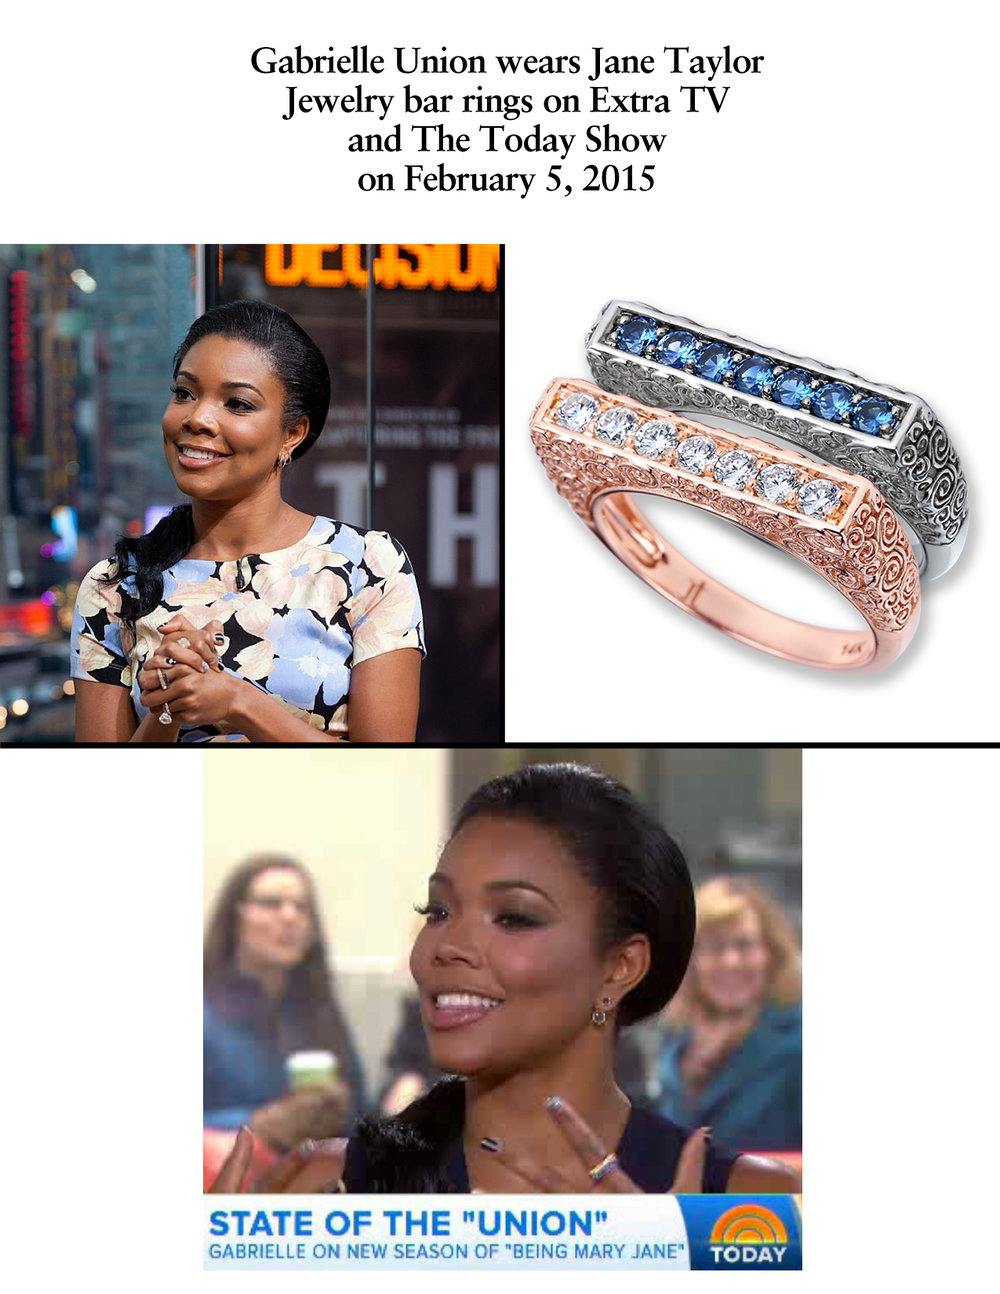 2015-2.5-Gabrielle Union wearing Jane Taylor Jewelry.jpg